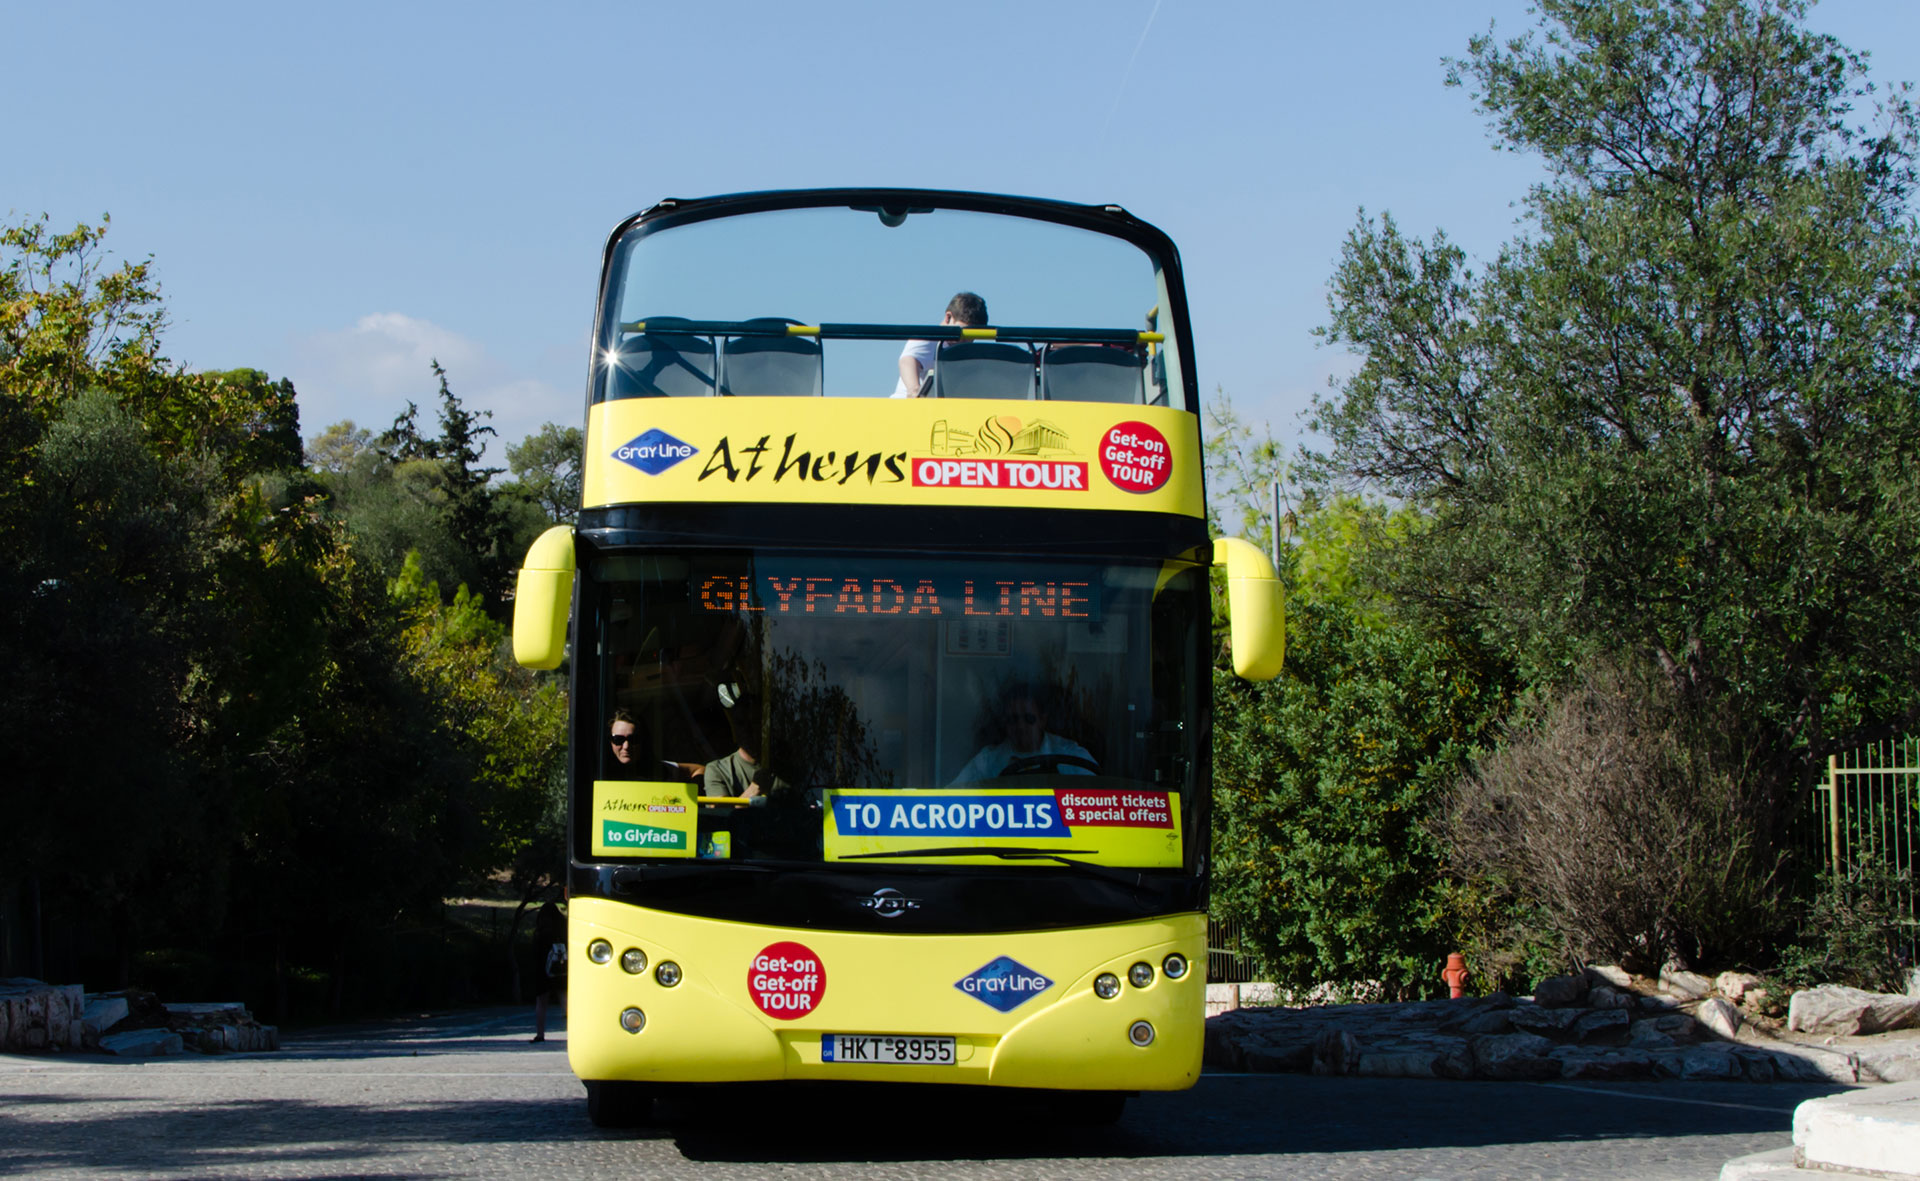 Athens Open Tour | Get on Get off Bus